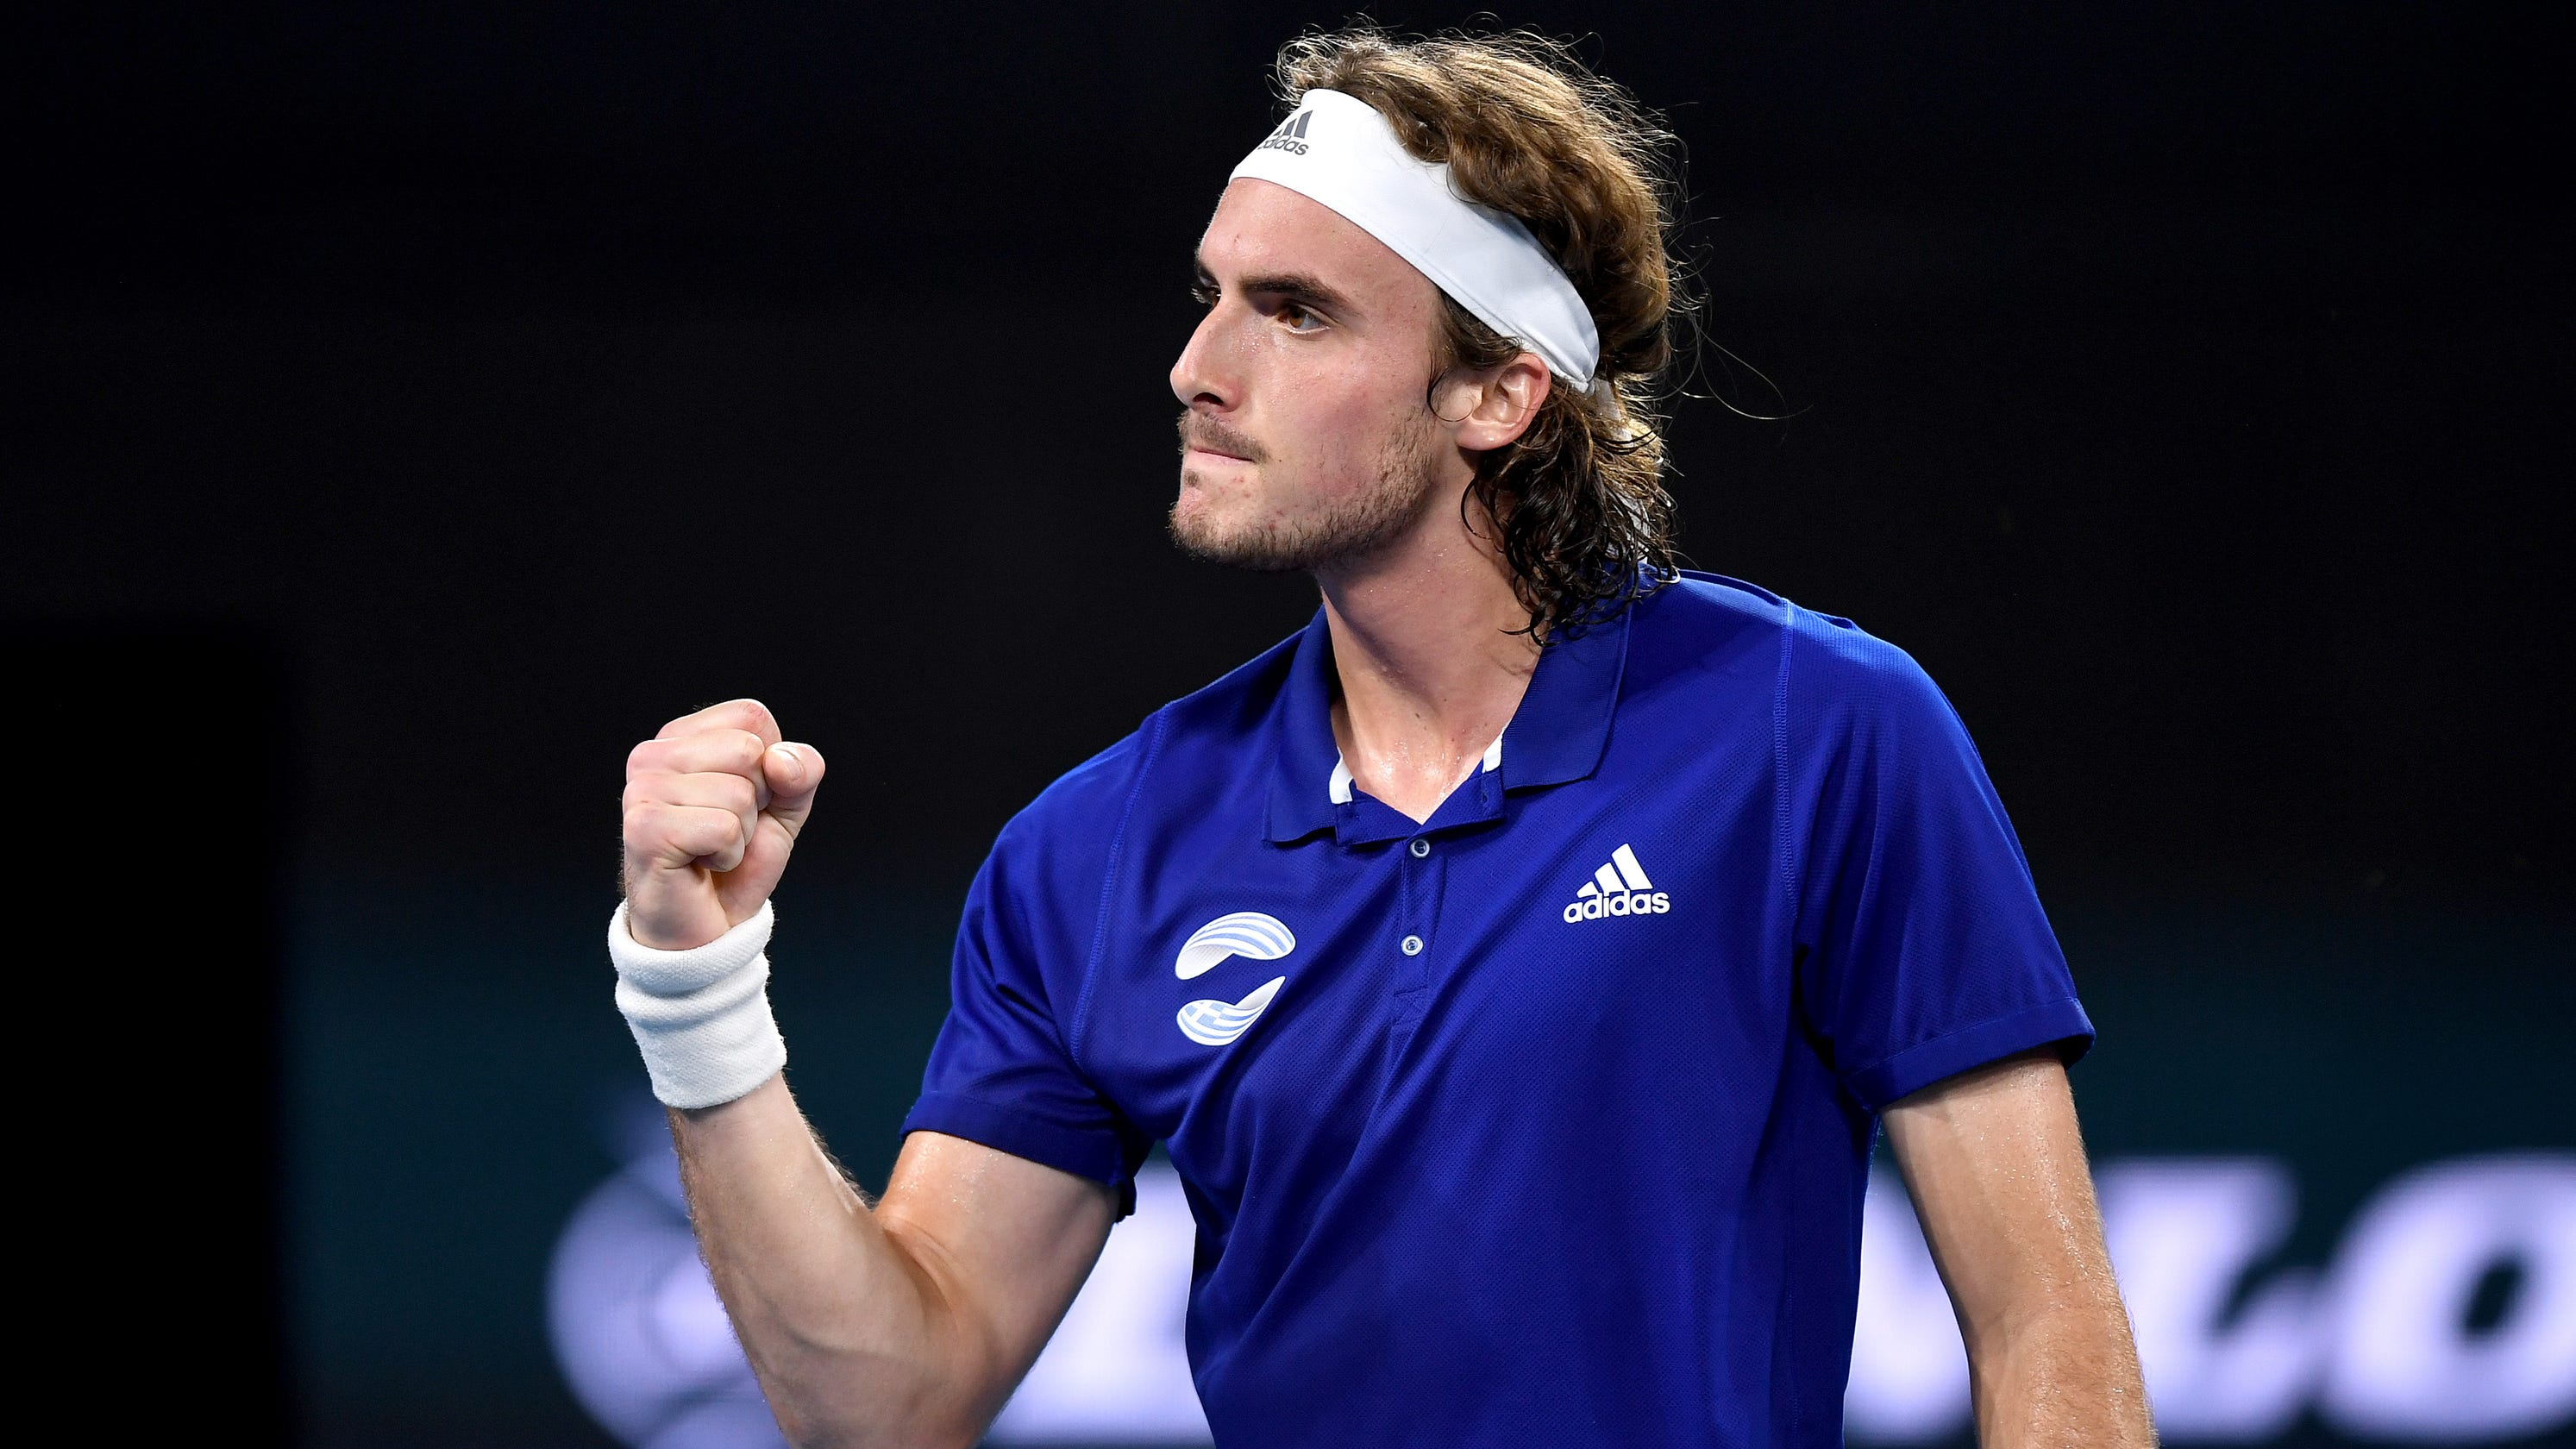 Stefanos Tsitsipas Hits Father With Racket During Outburst At Atp Cup